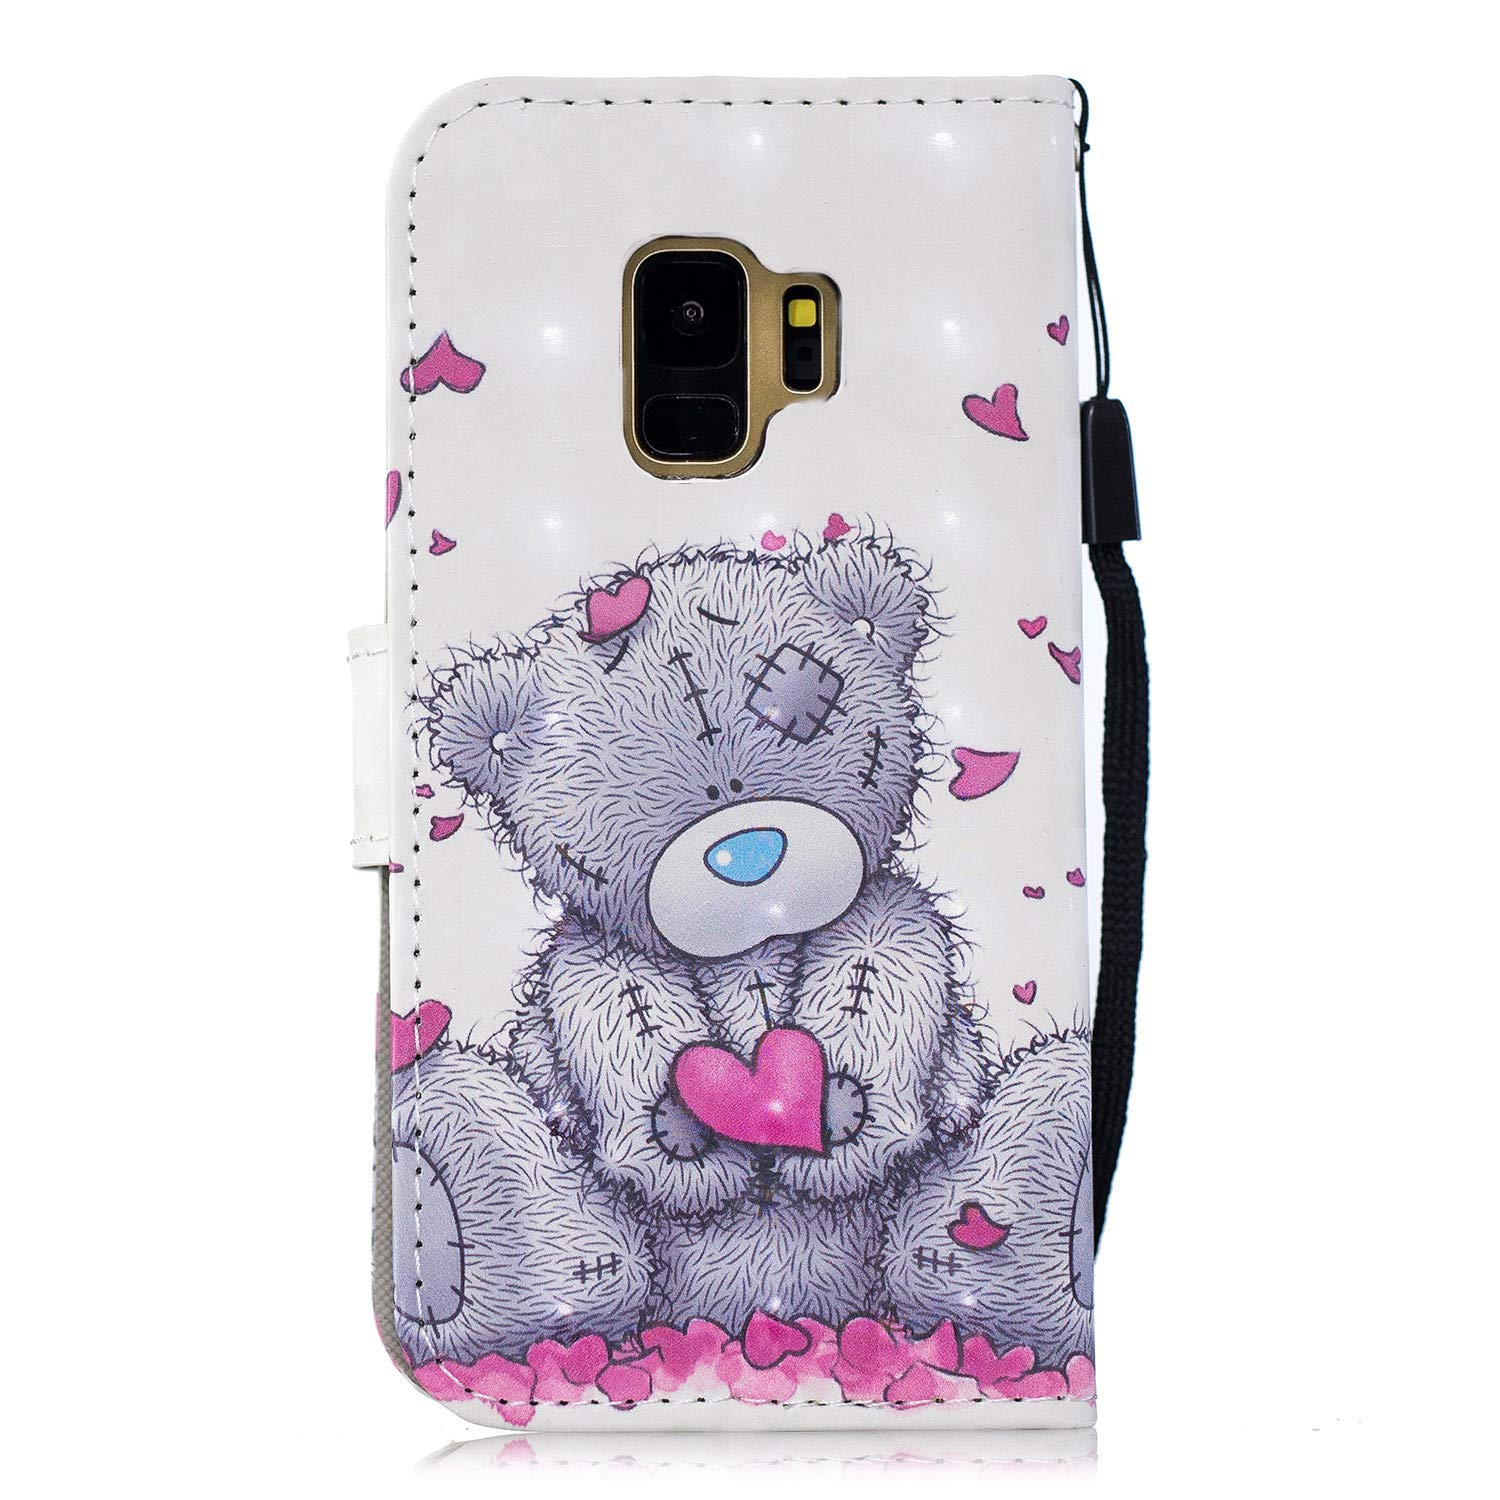 Felfy Case for Galaxy S9 Okssud Samsung Galaxy S9 Leather Flip Magnetic Protective Case